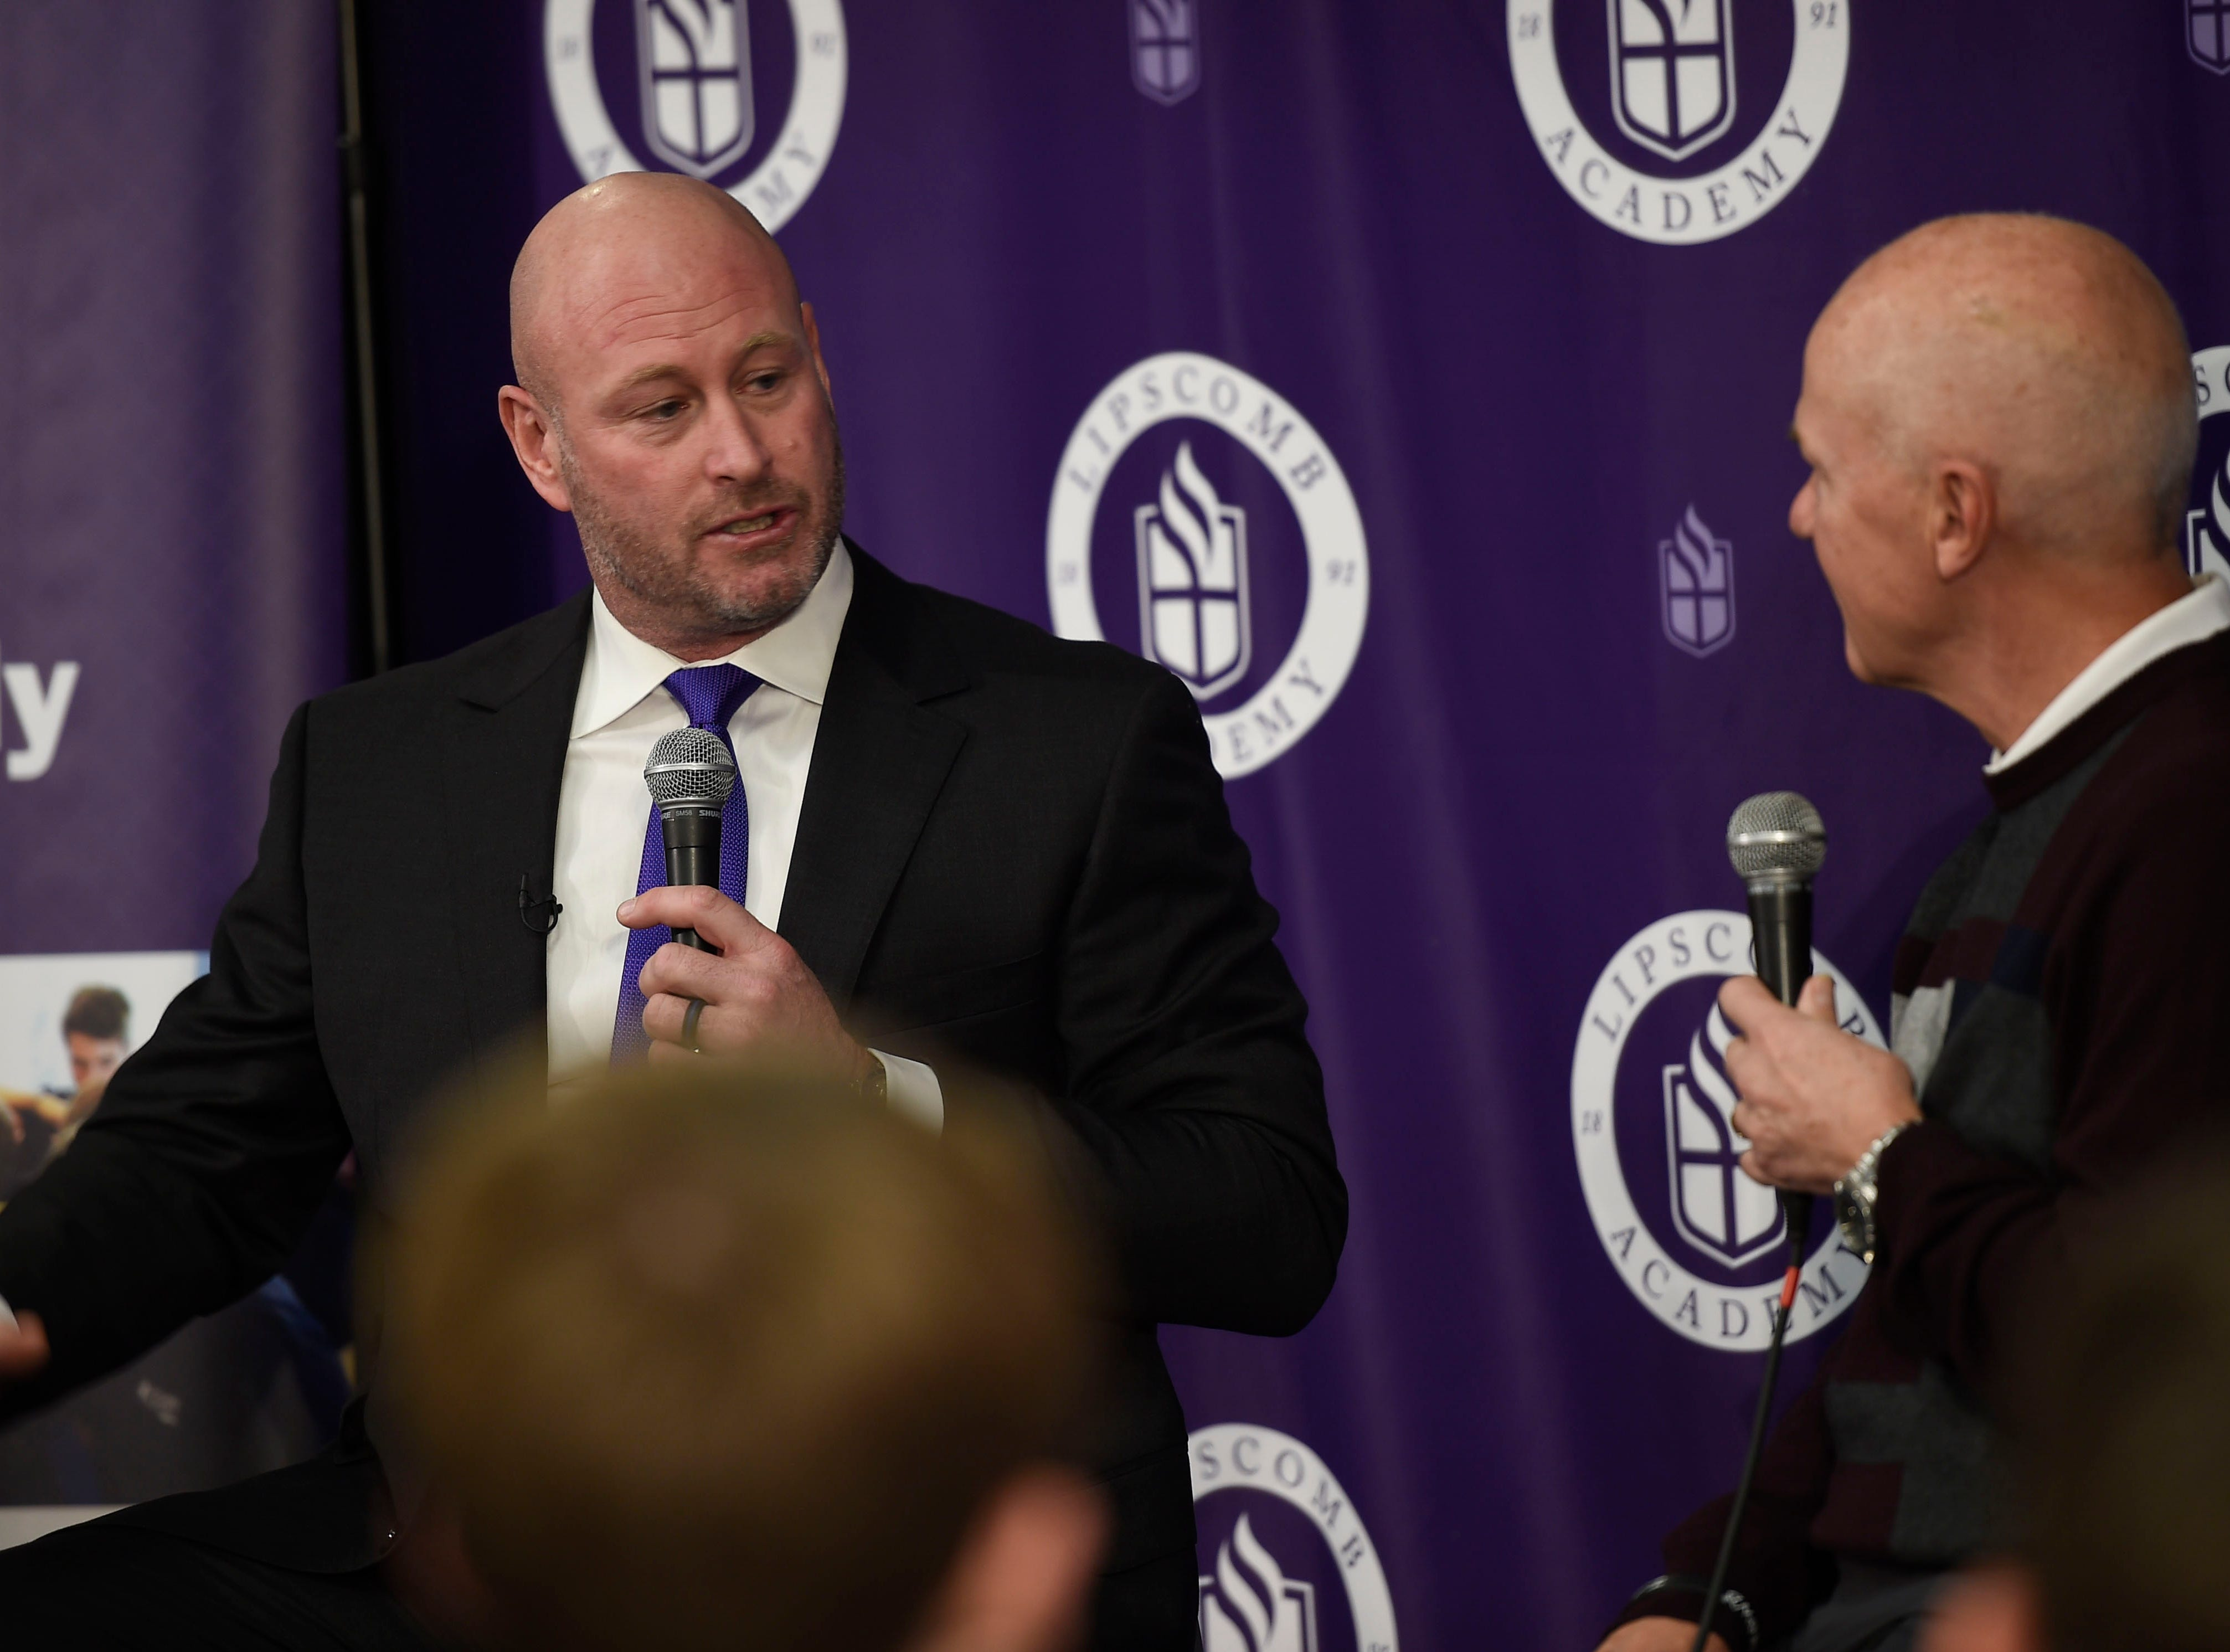 Trent Dilfer, the new football coach for Lipscomb Academy, speaks with Rudy Kalis following the press conference on Friday.